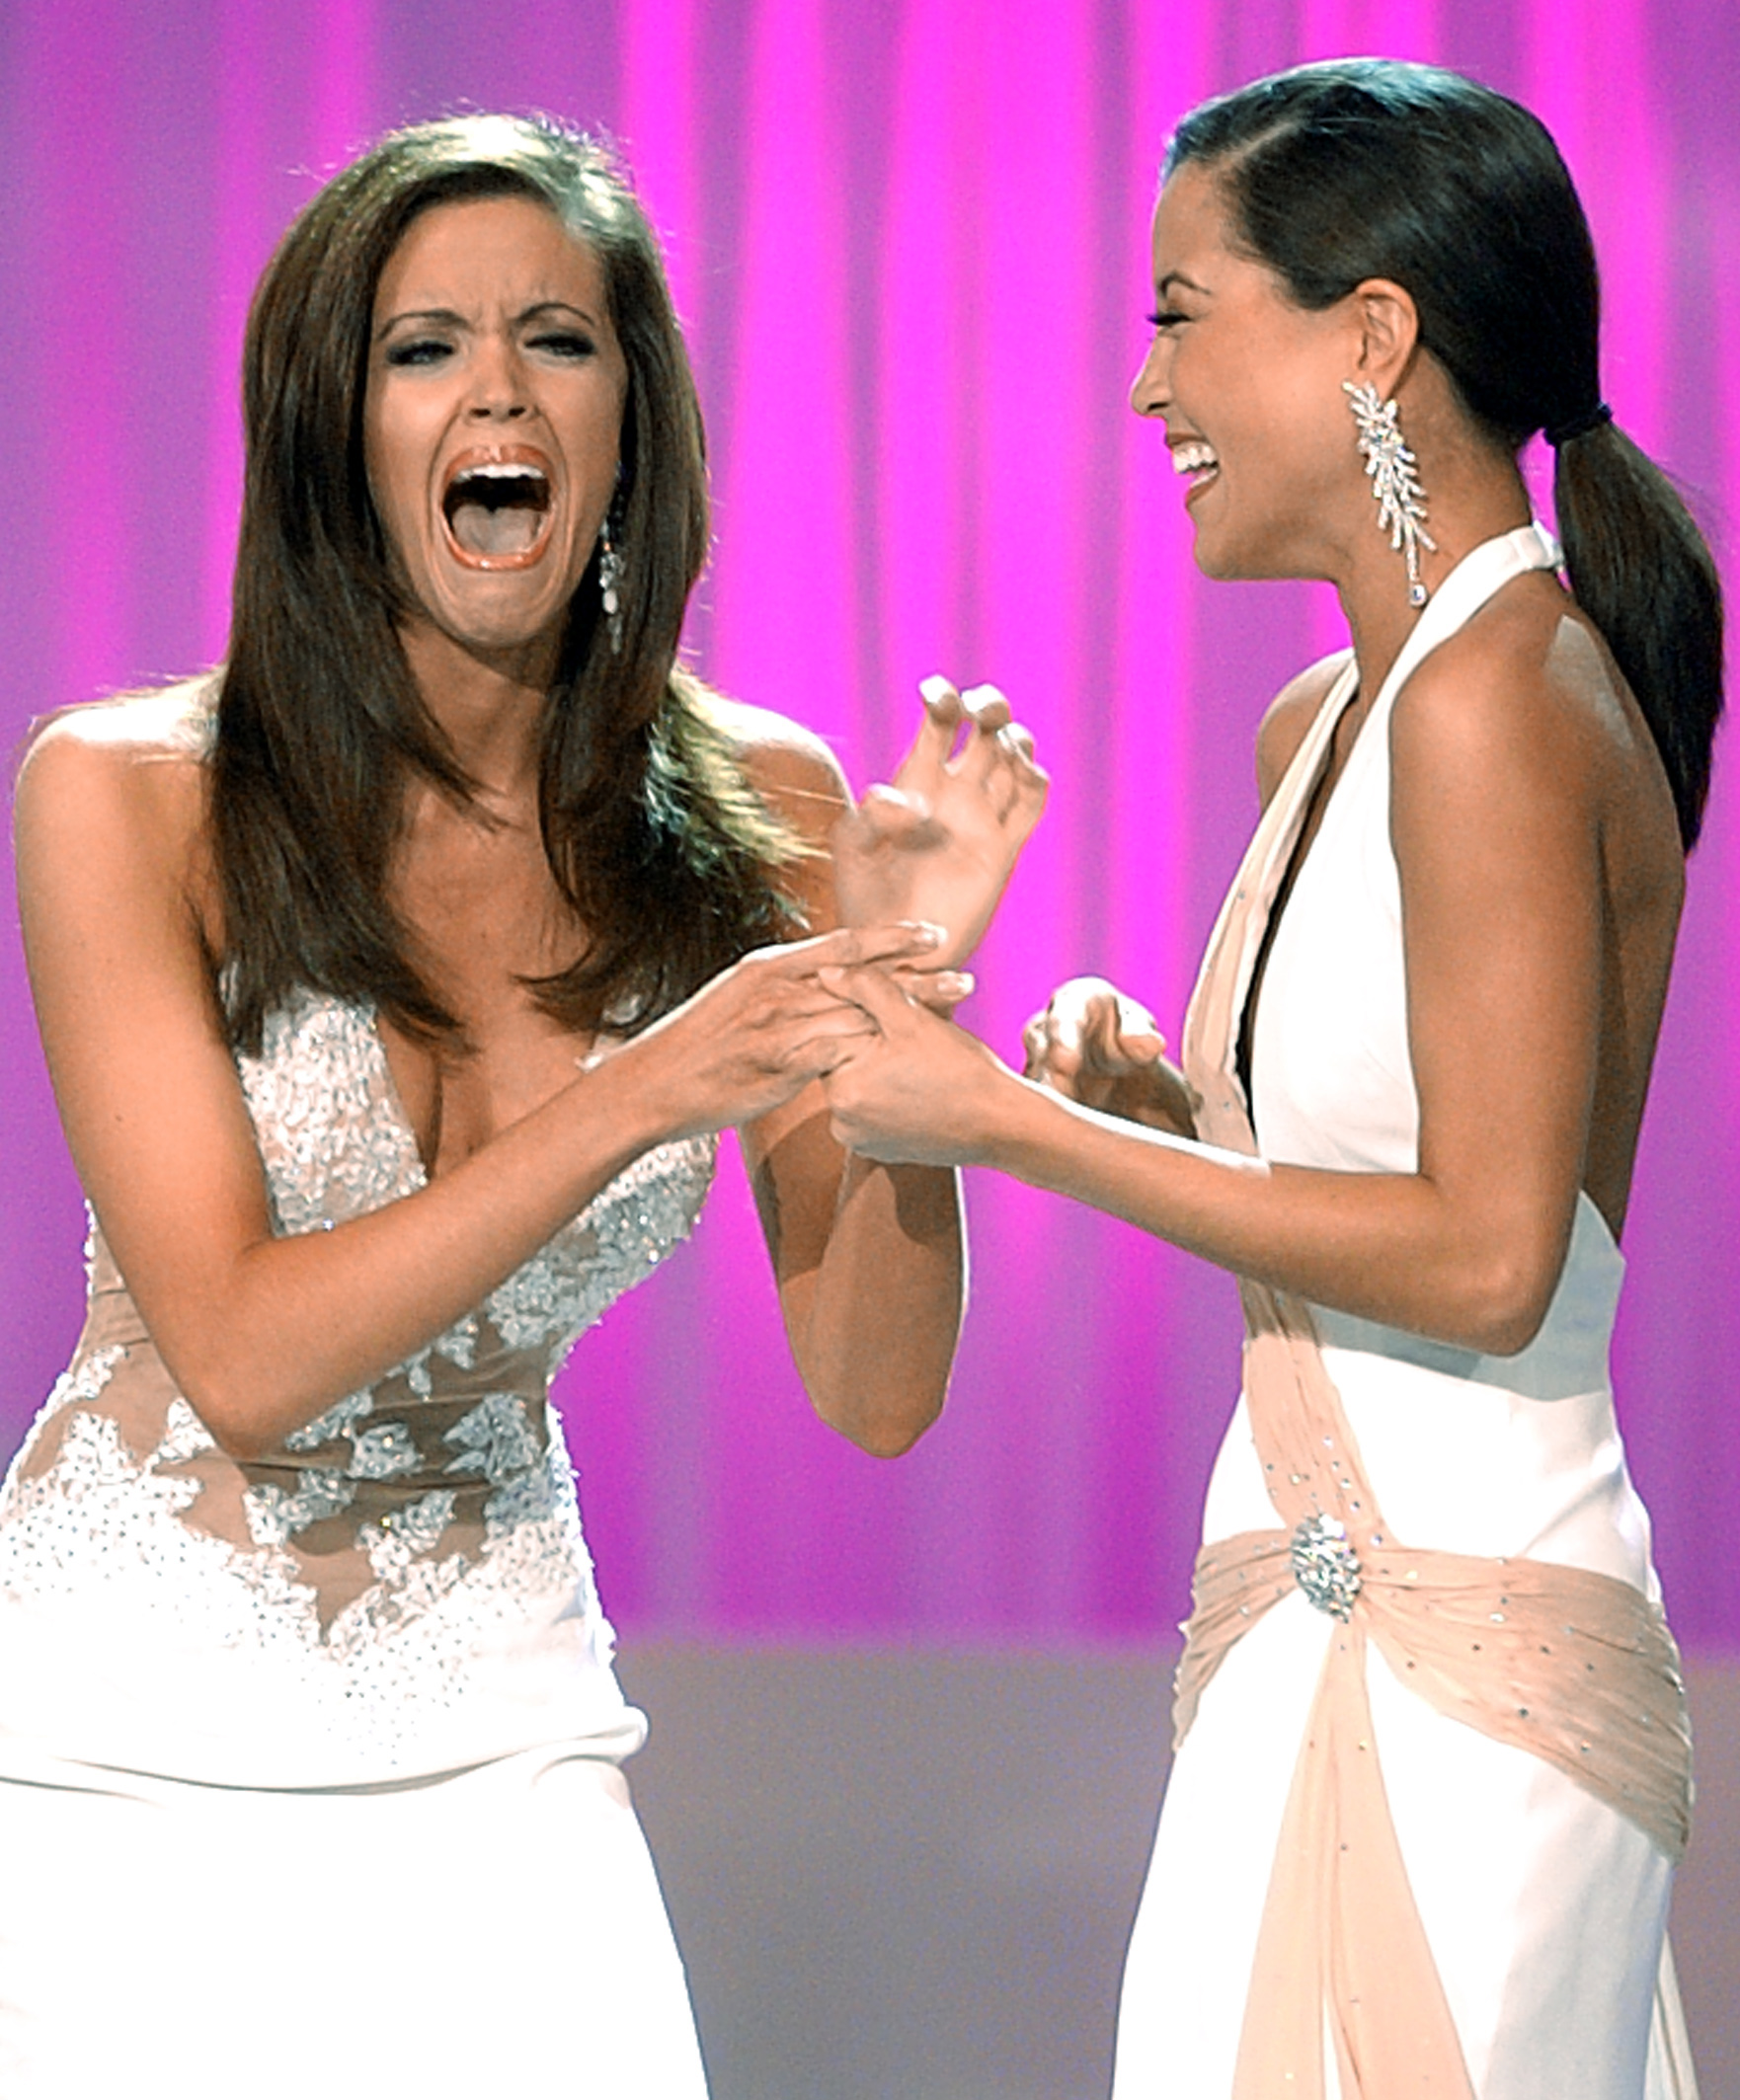 Miss Oklahoma Jennifer Berry reacts with Miss Georgia Monica Pang (R) after being named Miss America 2006 at the conclusion of the Miss America pageant in Las Vegas on Jan. 21, 2006